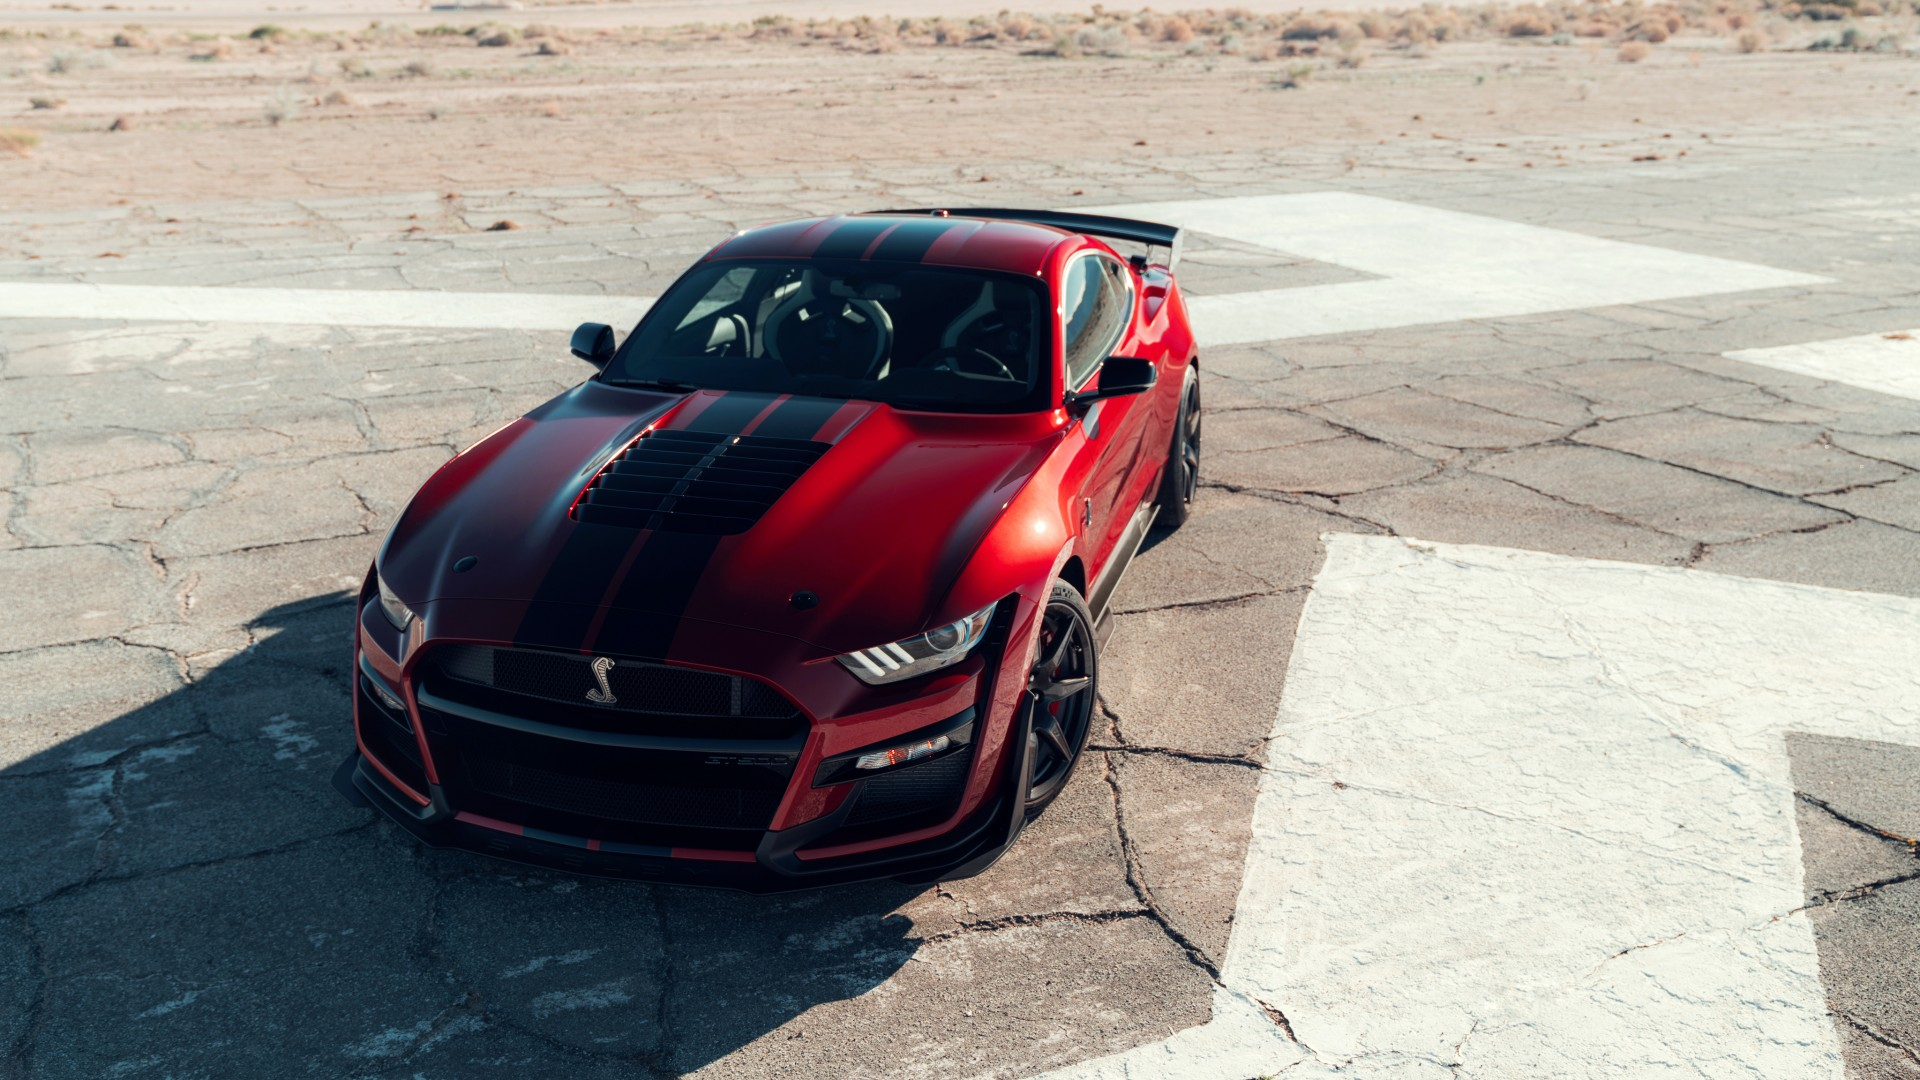 Ford Mustang Ecoboost Fastback K X moreover S L besides D Fs Shelby Gt Stock Wheels New further Ford Mustang Shelby Gt besides A D D F F E E F C Custom Cars Ford Mustangs. on ford mustang shelby cobra